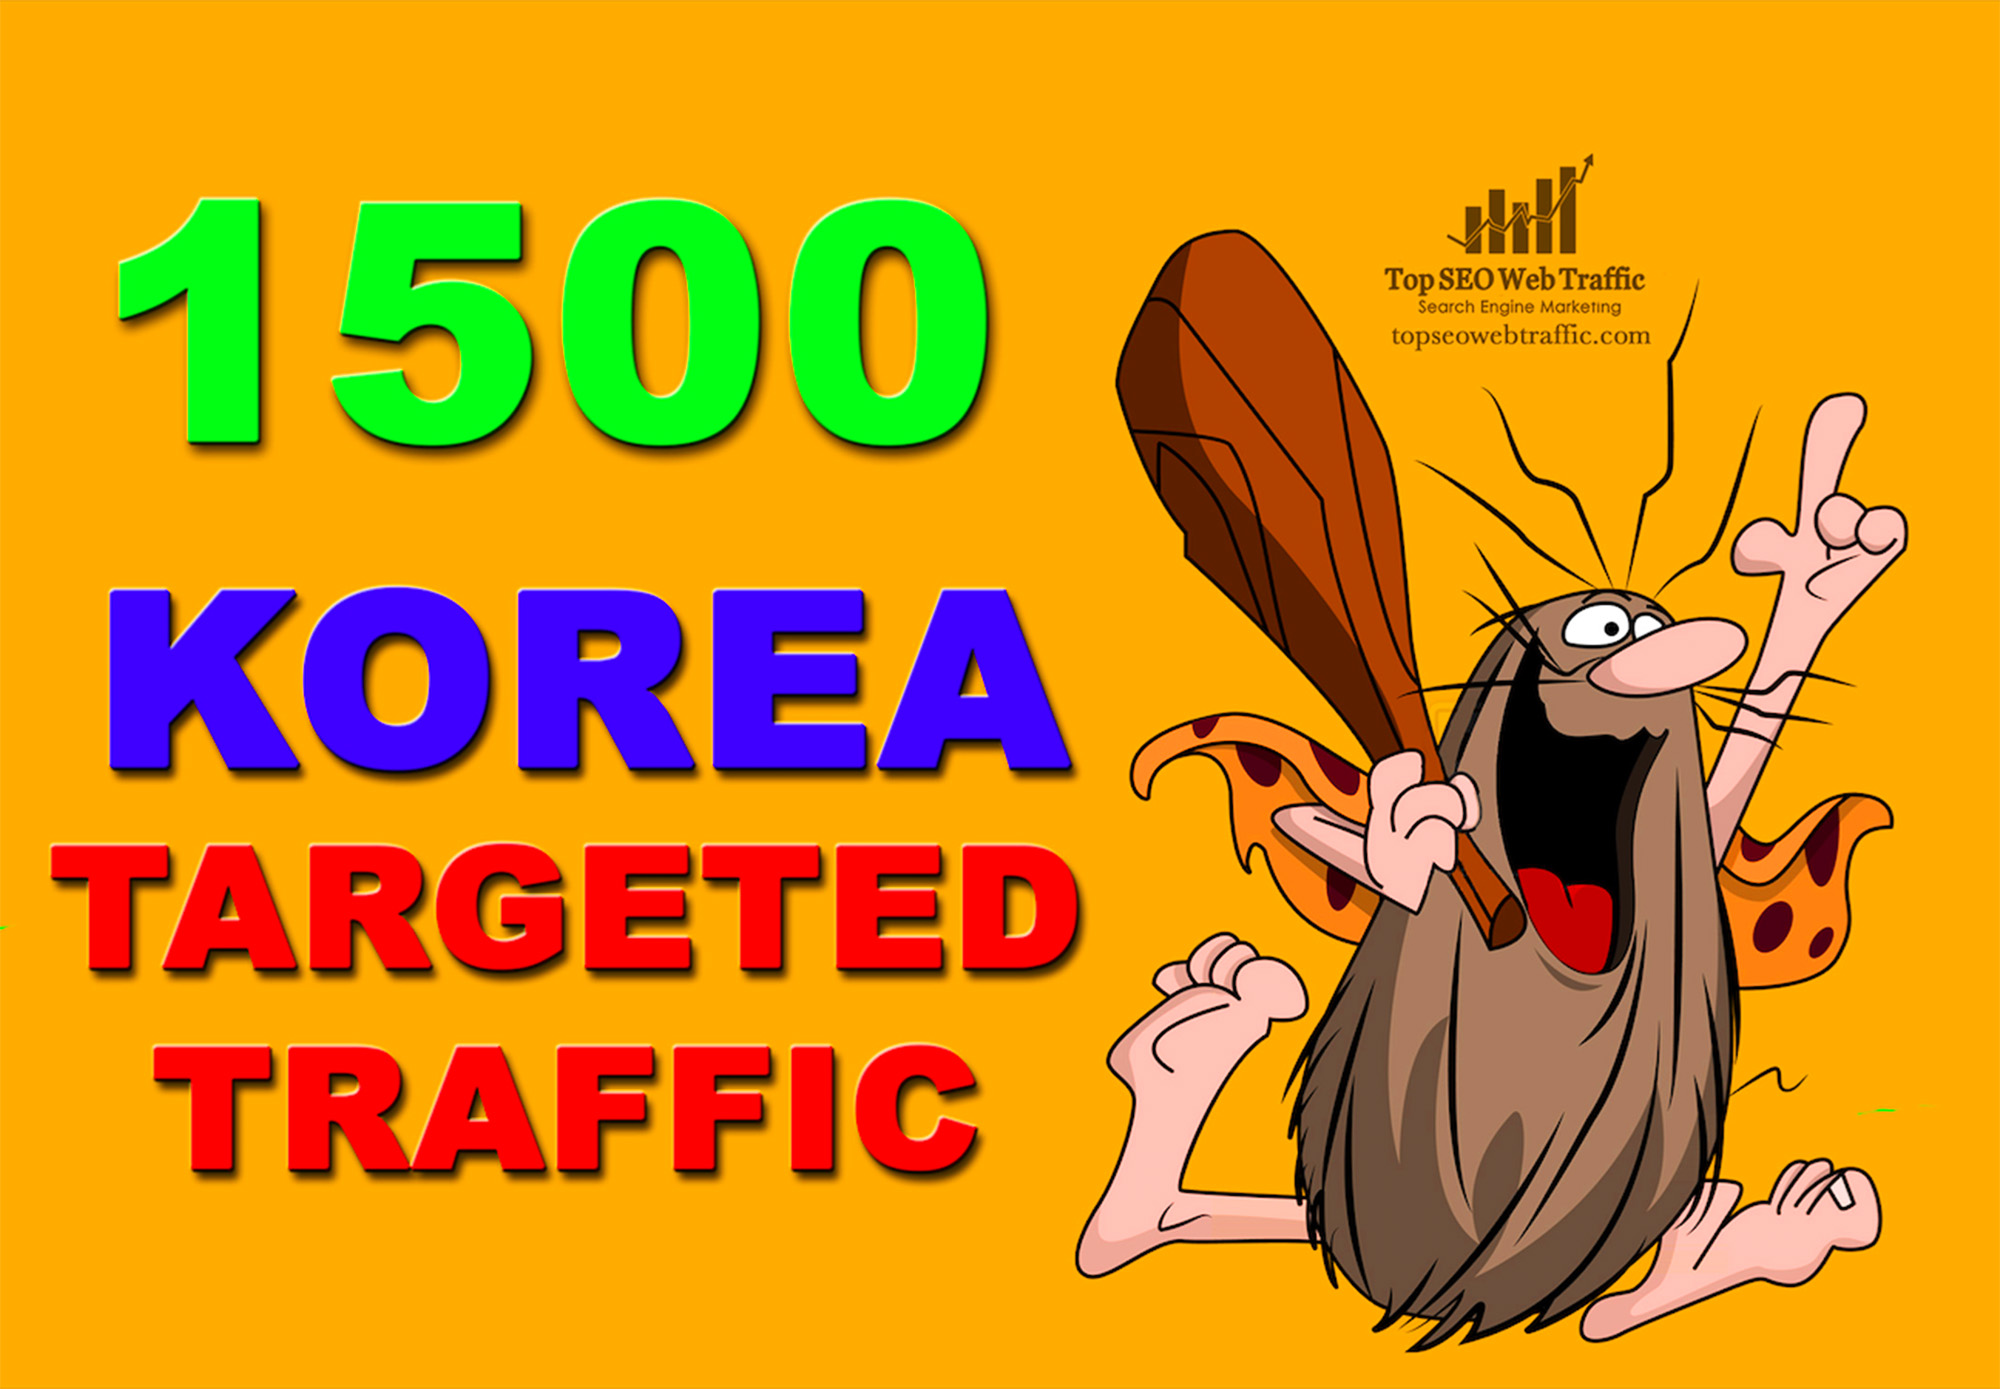 I WILL SEND 1,500 HIGHT SOUTH KOREA WEB TRAFFIC VISITORS